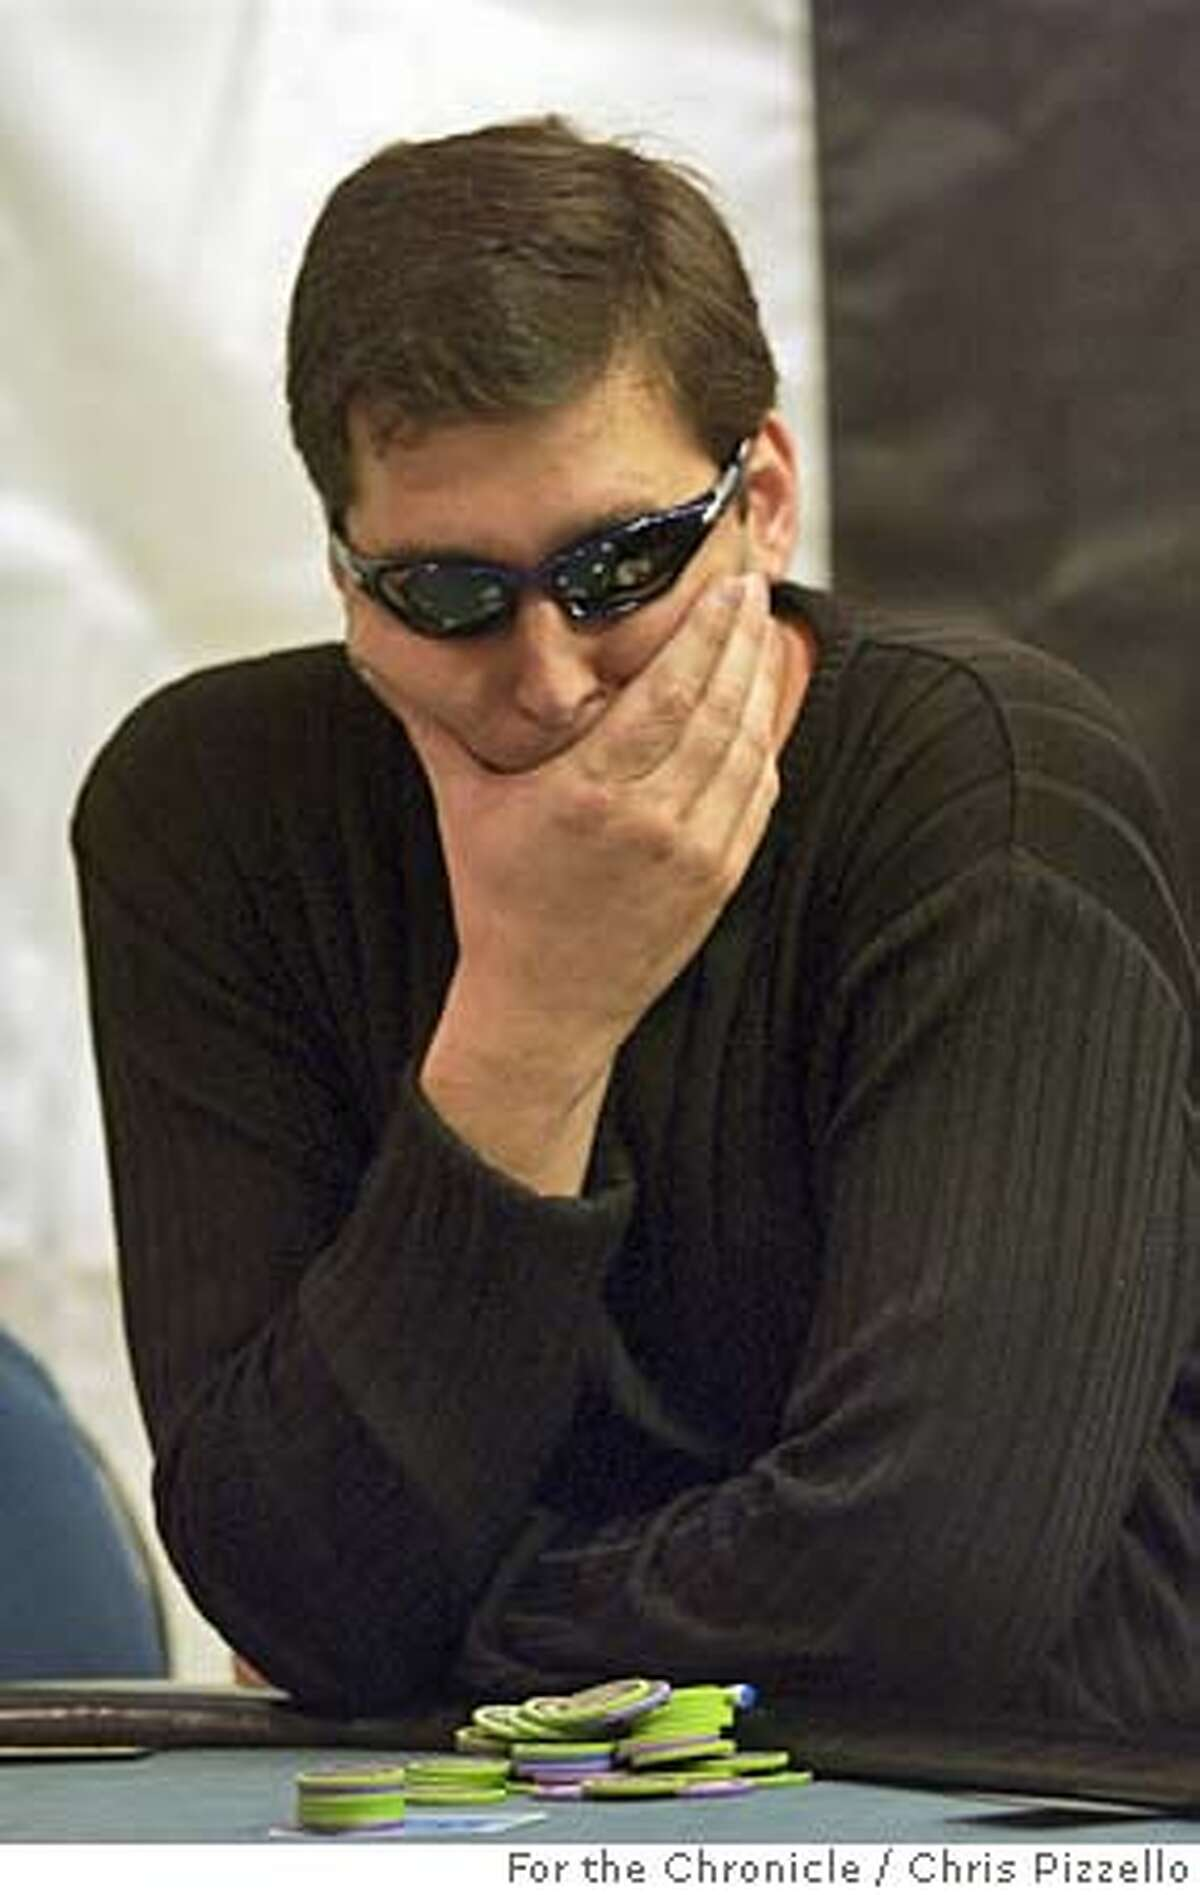 POKER.jpg Phil Hellmuth ( black glasses ) takes part in the World Pocker Tour at the Bicycle Casino in Bell Garden CA. By Chris Pizzello/For the Chronicle CAT as cropped